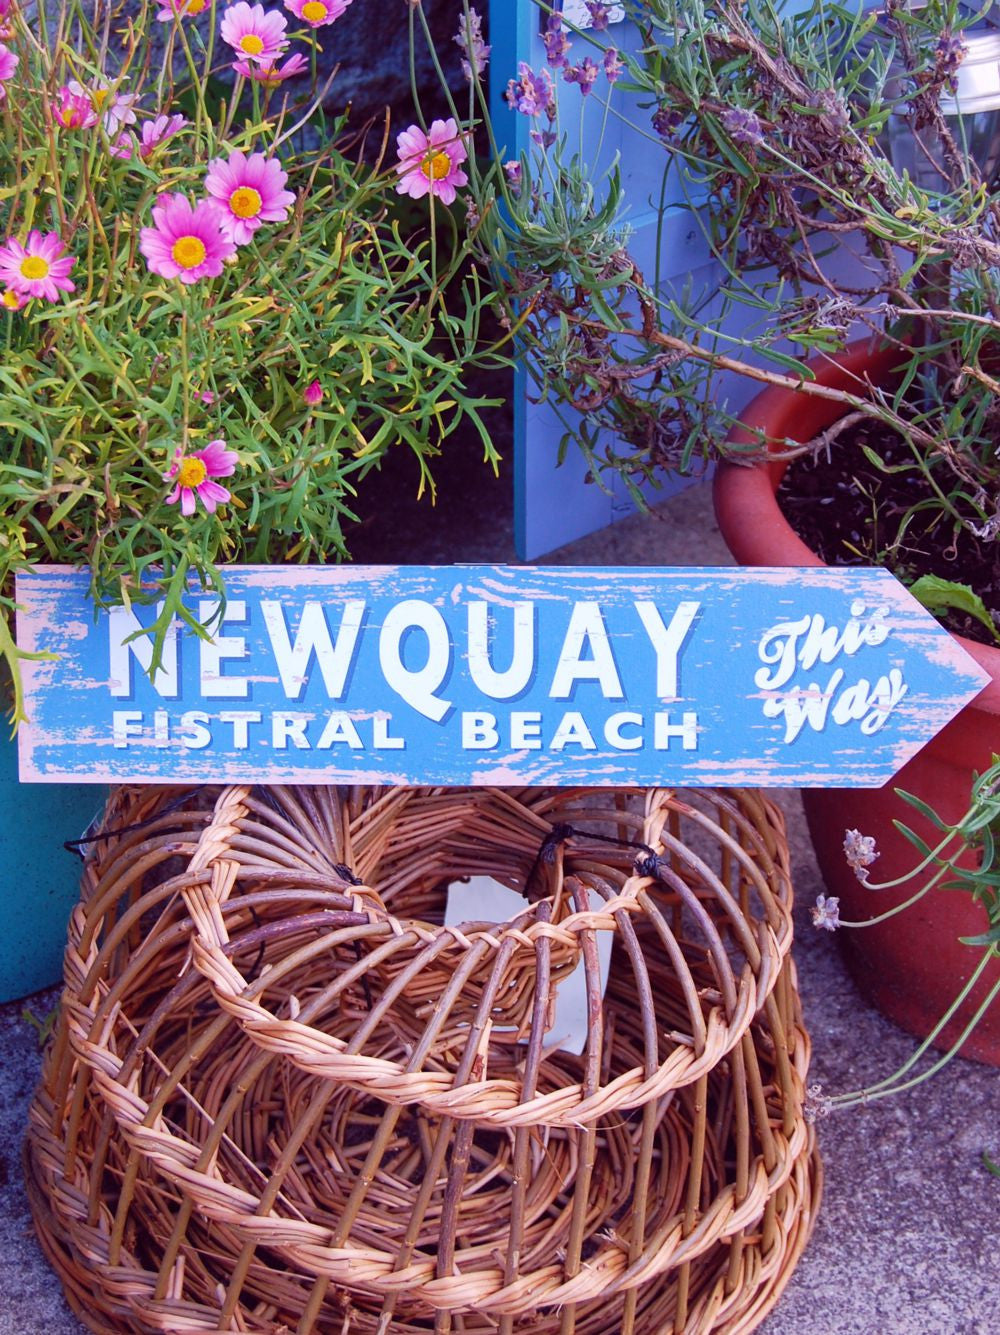 Newquay coastal sign (blue)